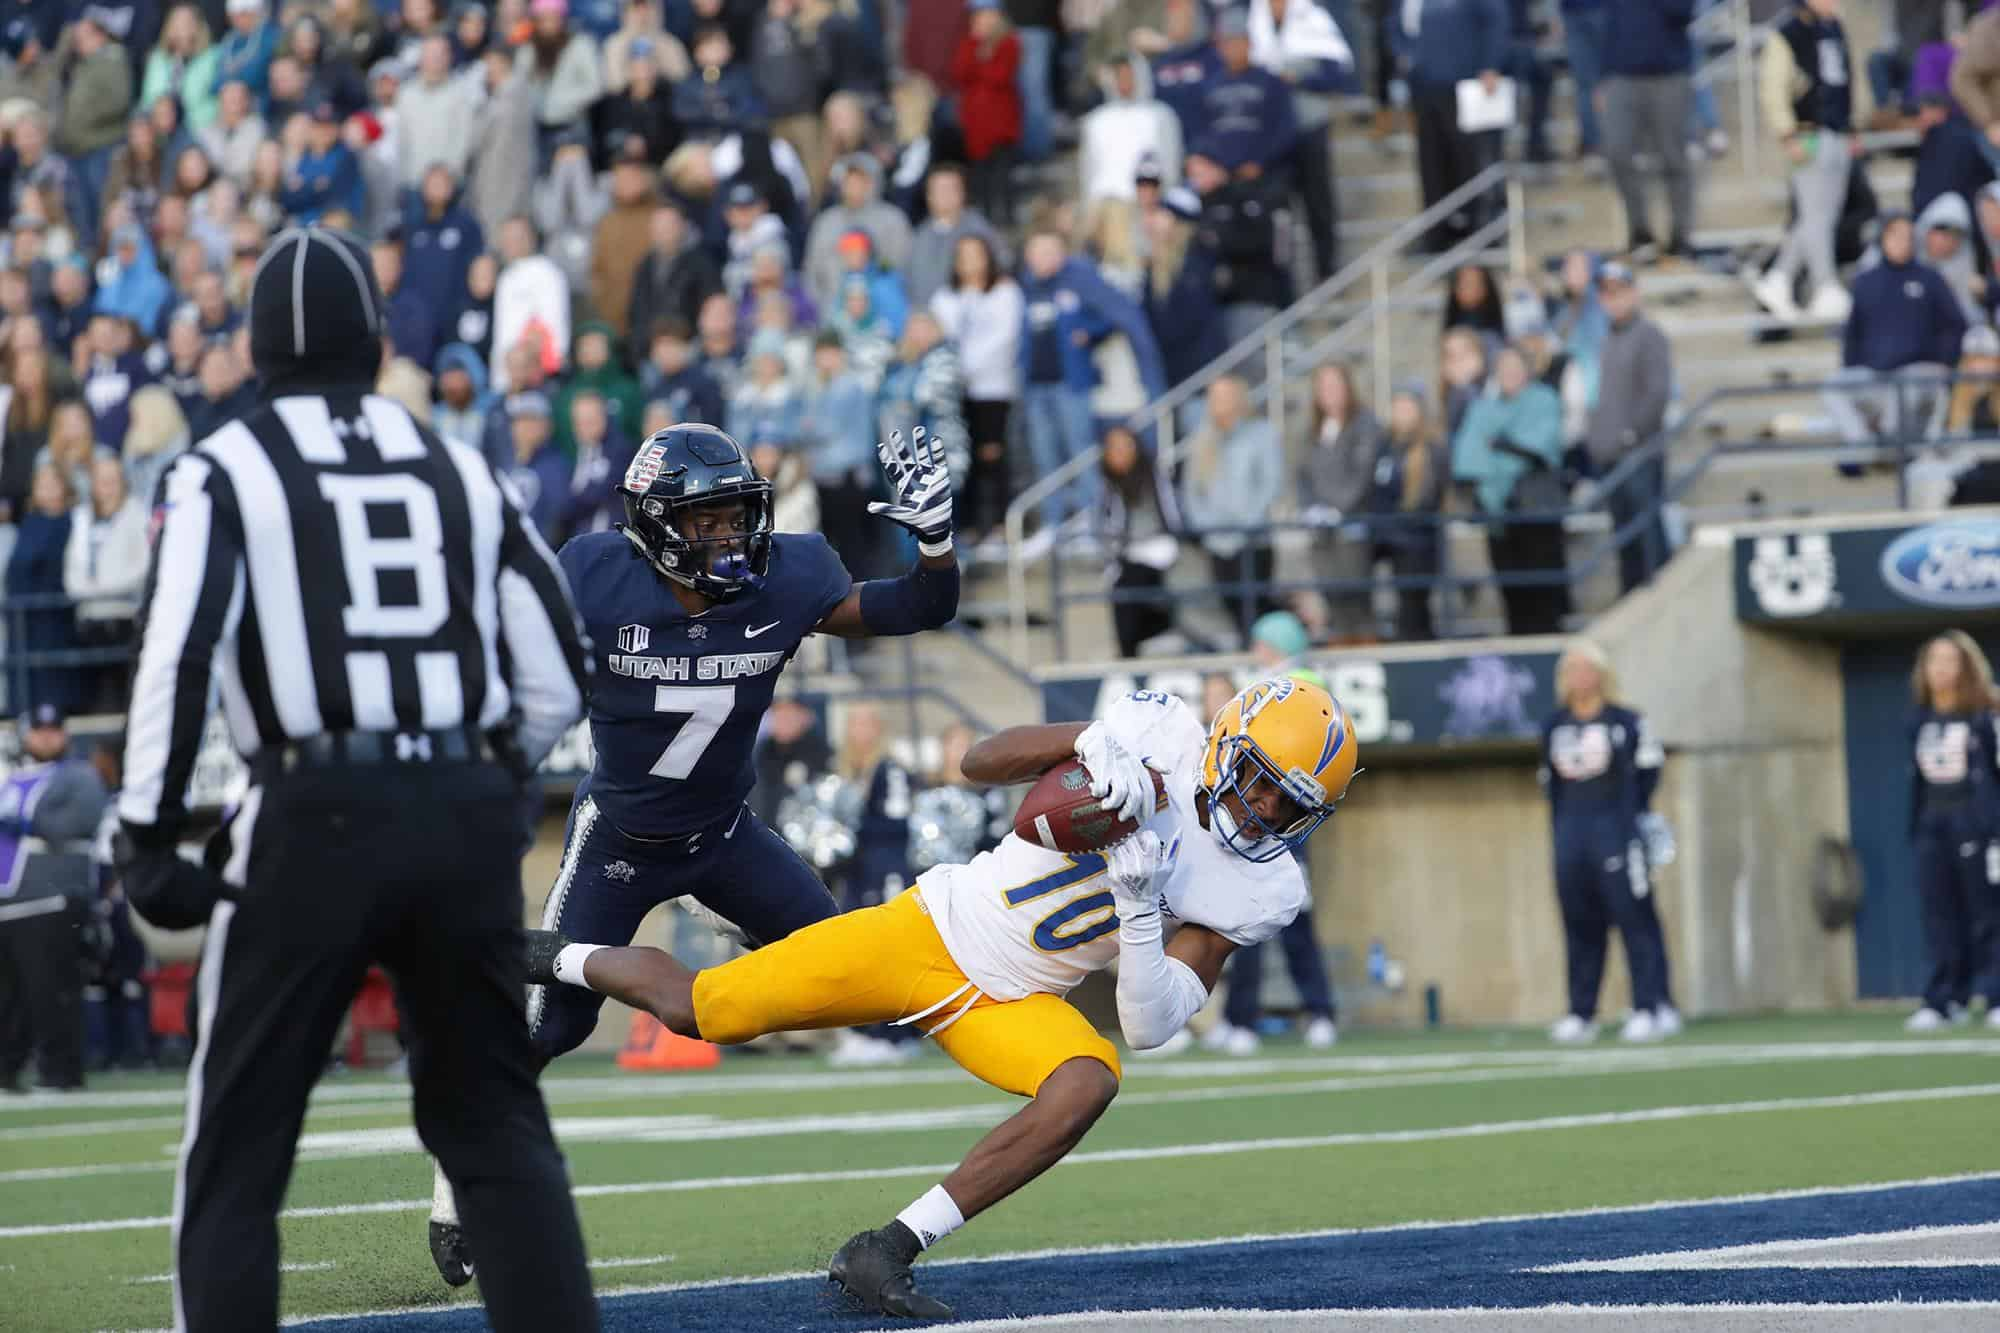 San Jose State wide receiver Tre Walker is an electric playmaker